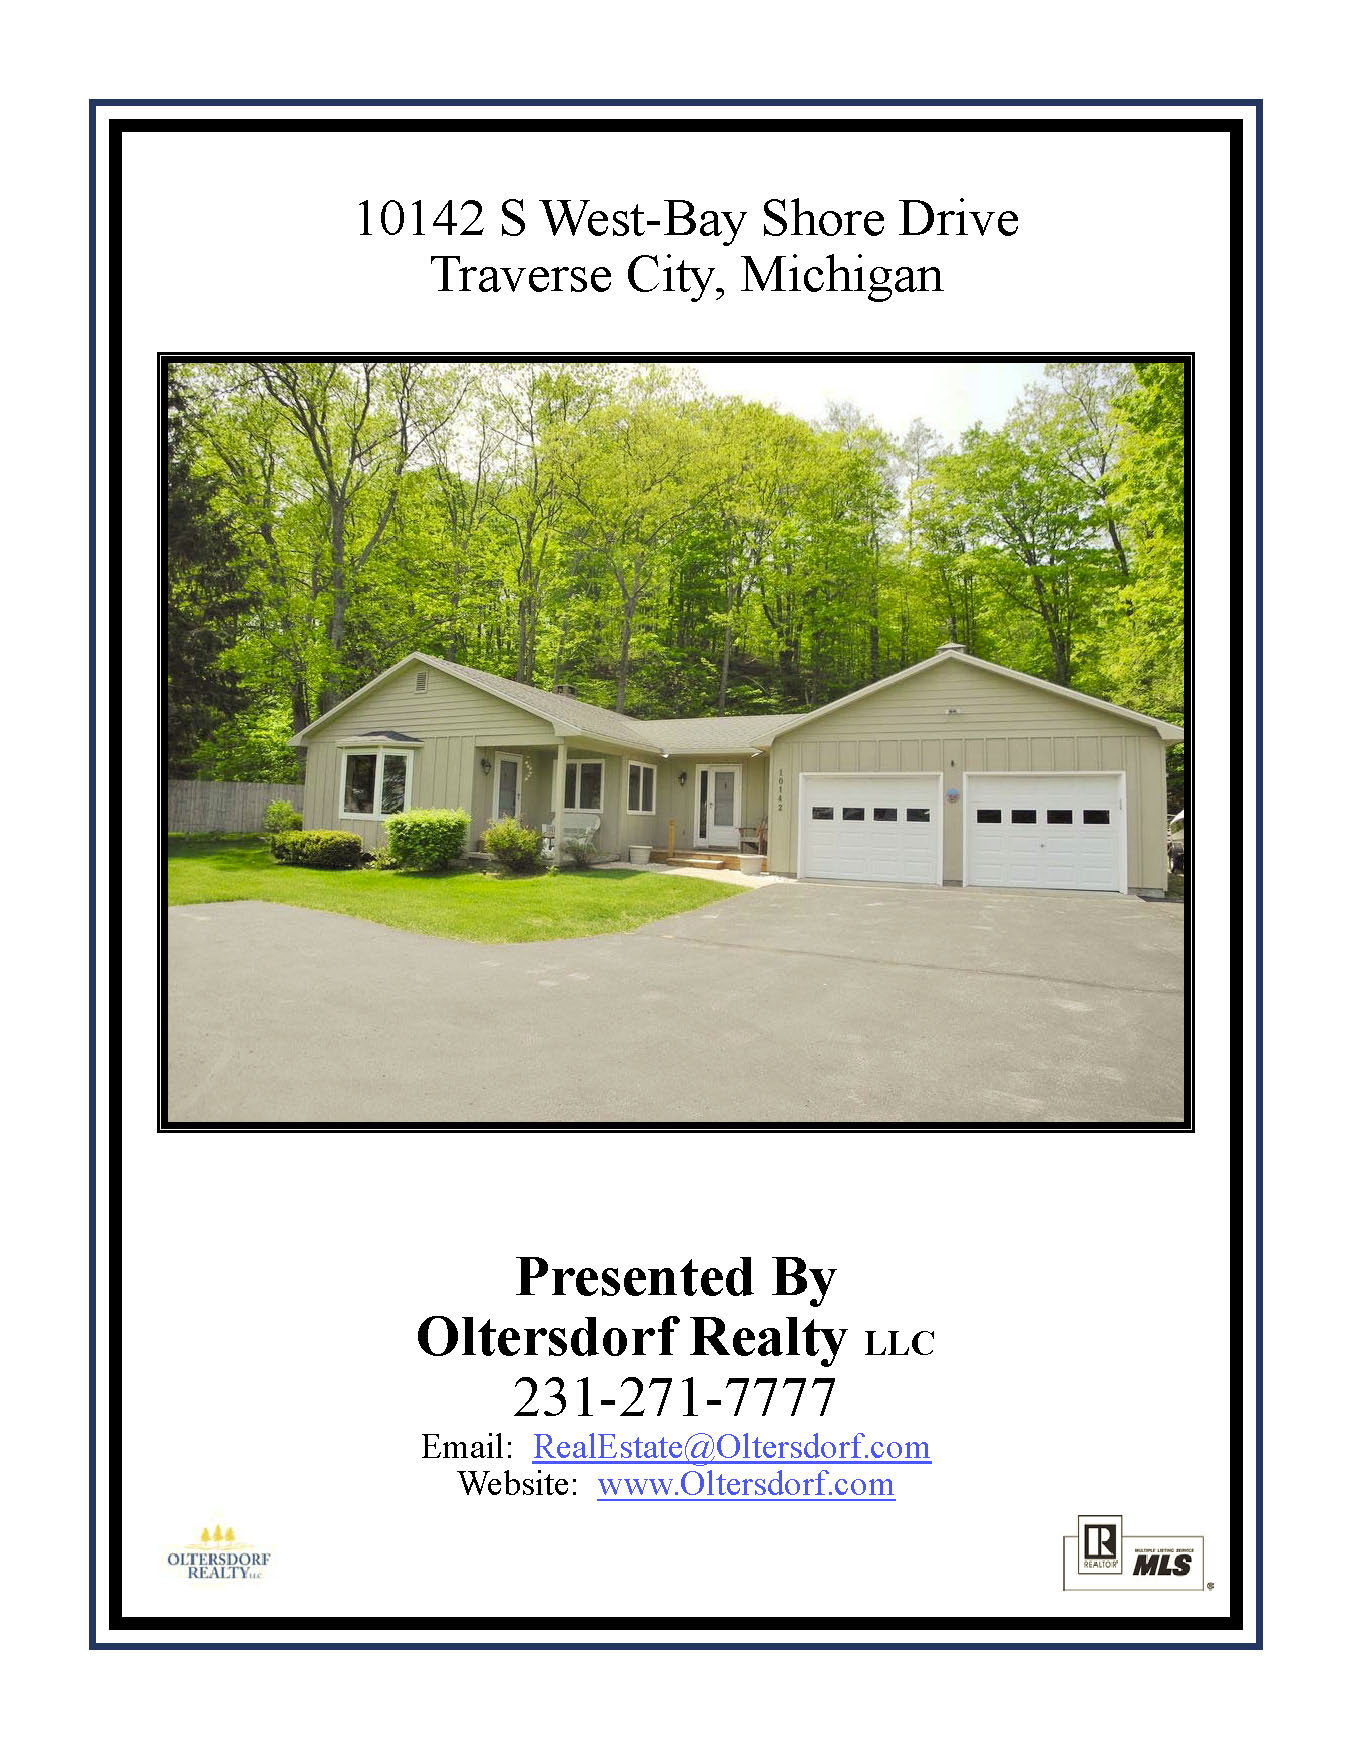 10142 S West Bay Shore Drive, Traverse City, MI - For sale by Oltersdorf Realty LLC - Marketing Packet (1).jpg